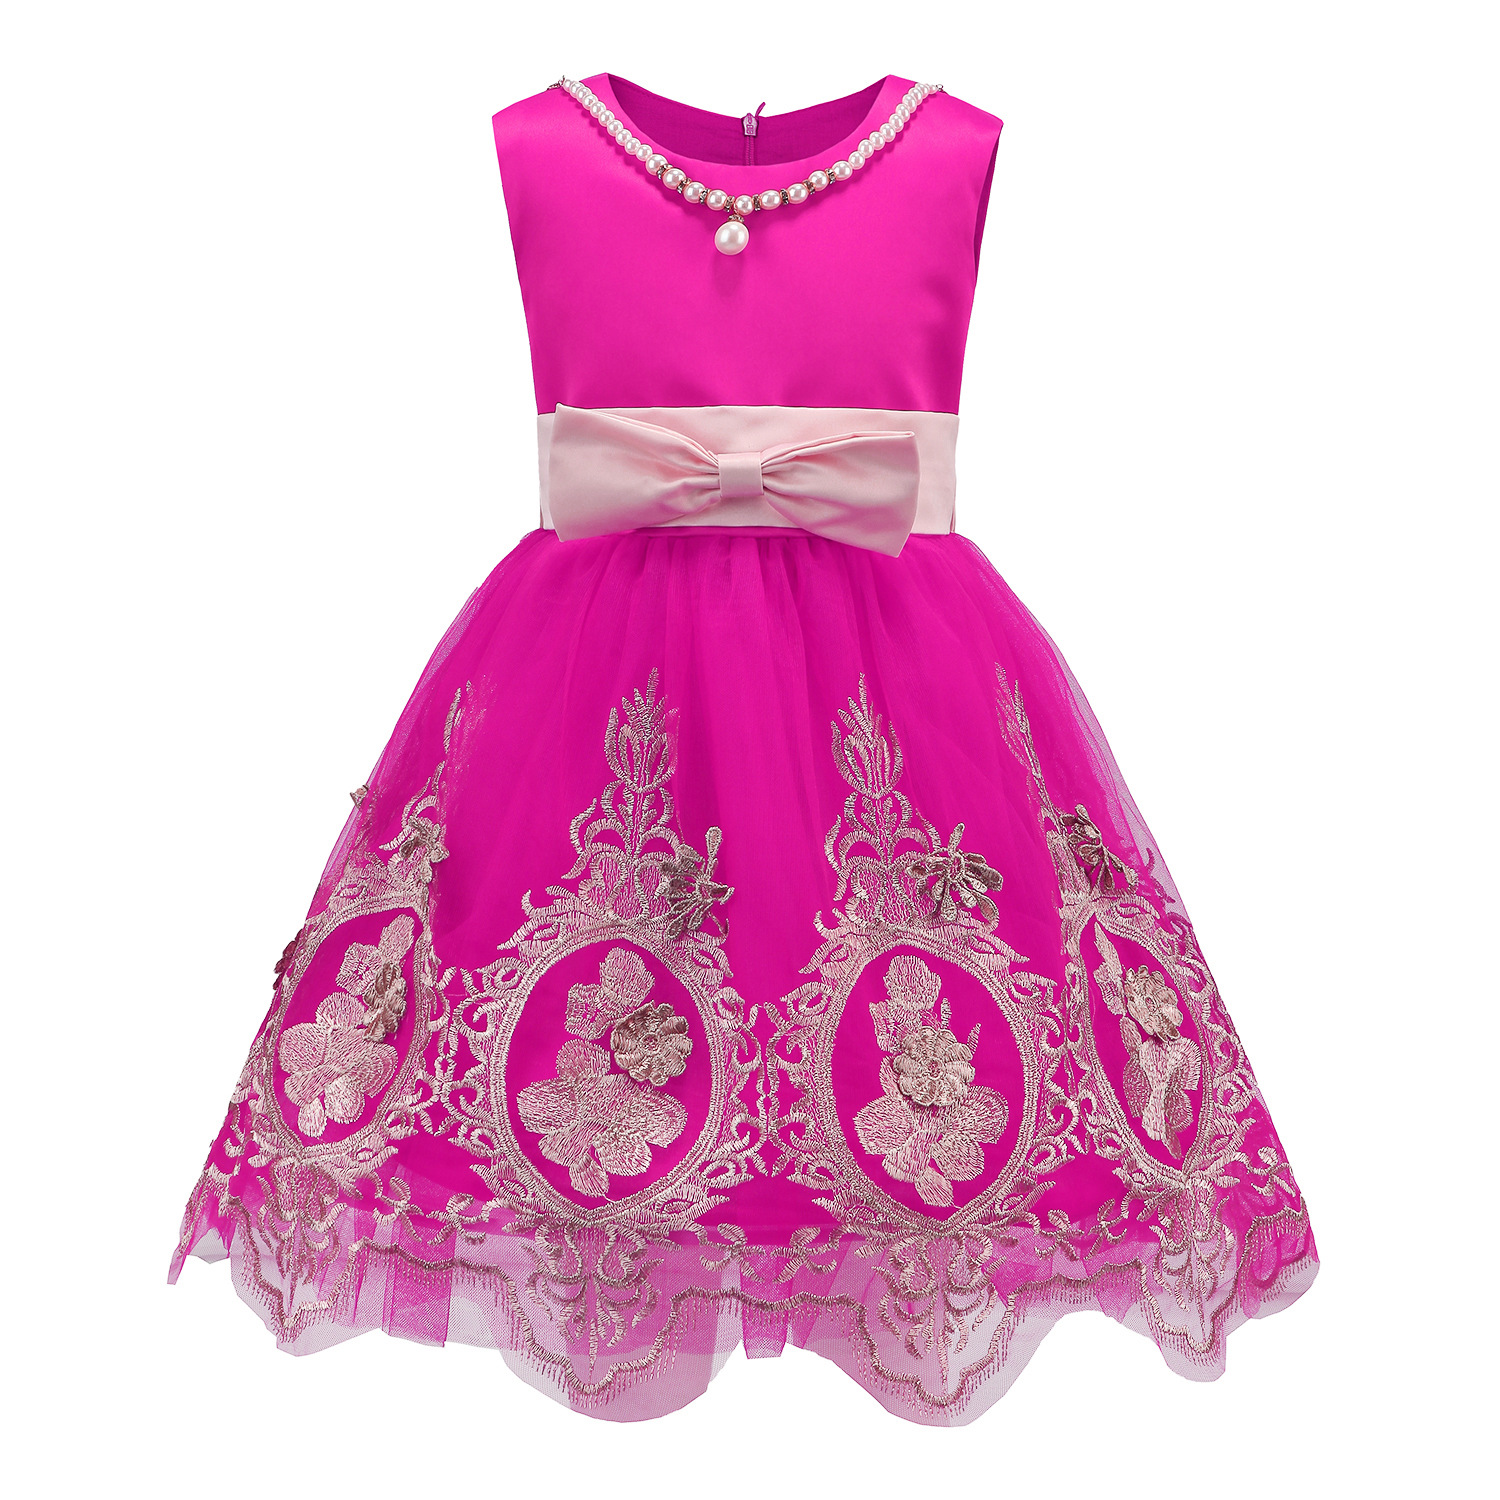 Baby Girls Dress Lace Princess 2017 Summer Spring Princess Deguisement Beautiful Pretty Girl Dresses For 3-9 Years Old robe cleopatre deguisement